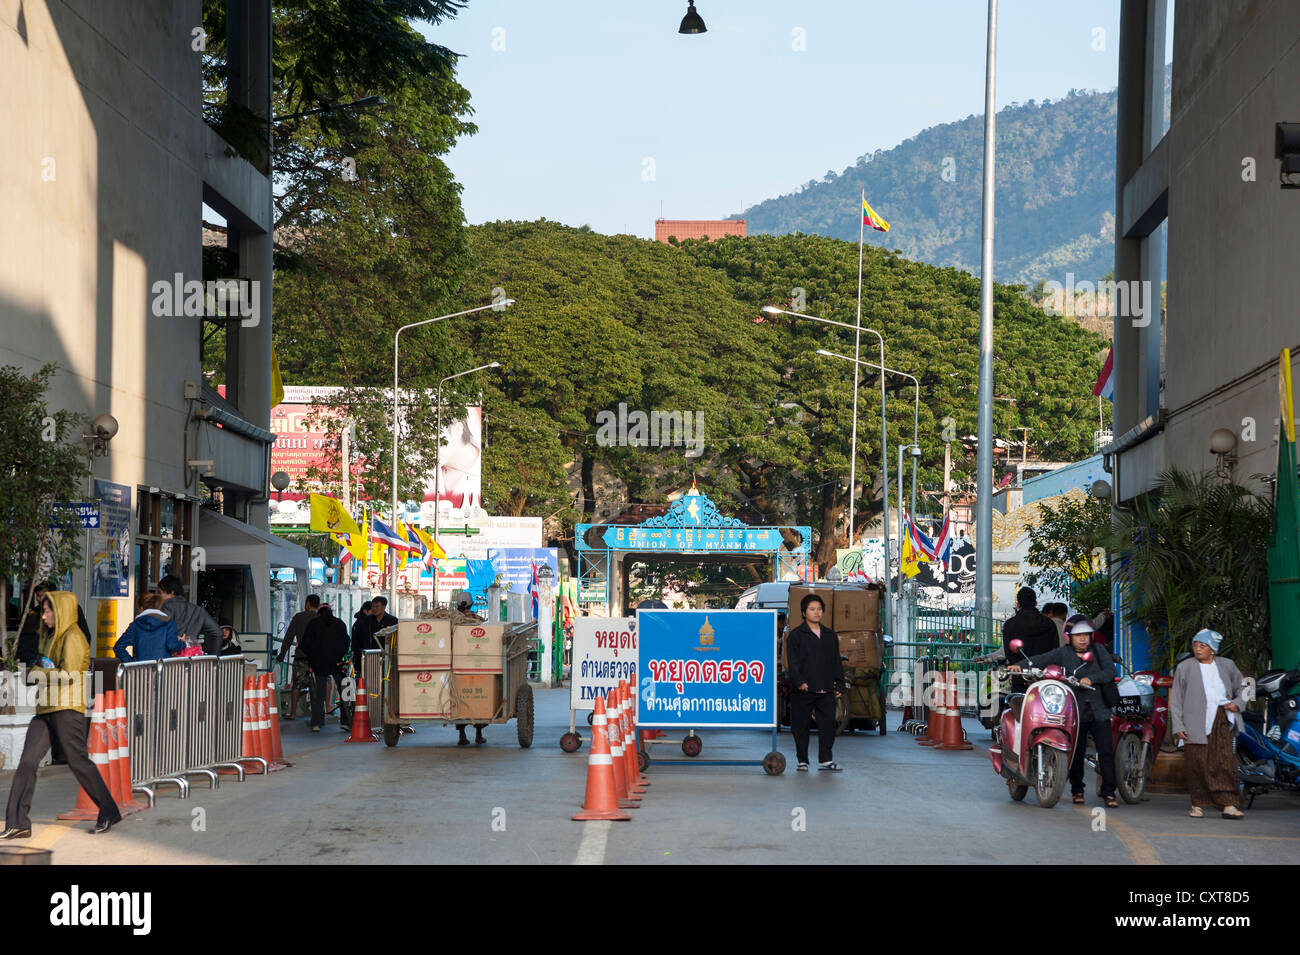 Border controls between Myanmar, Burma, and Thailand on the Thai side, Mae Sai, the northernmost town in Thailand - Stock Image